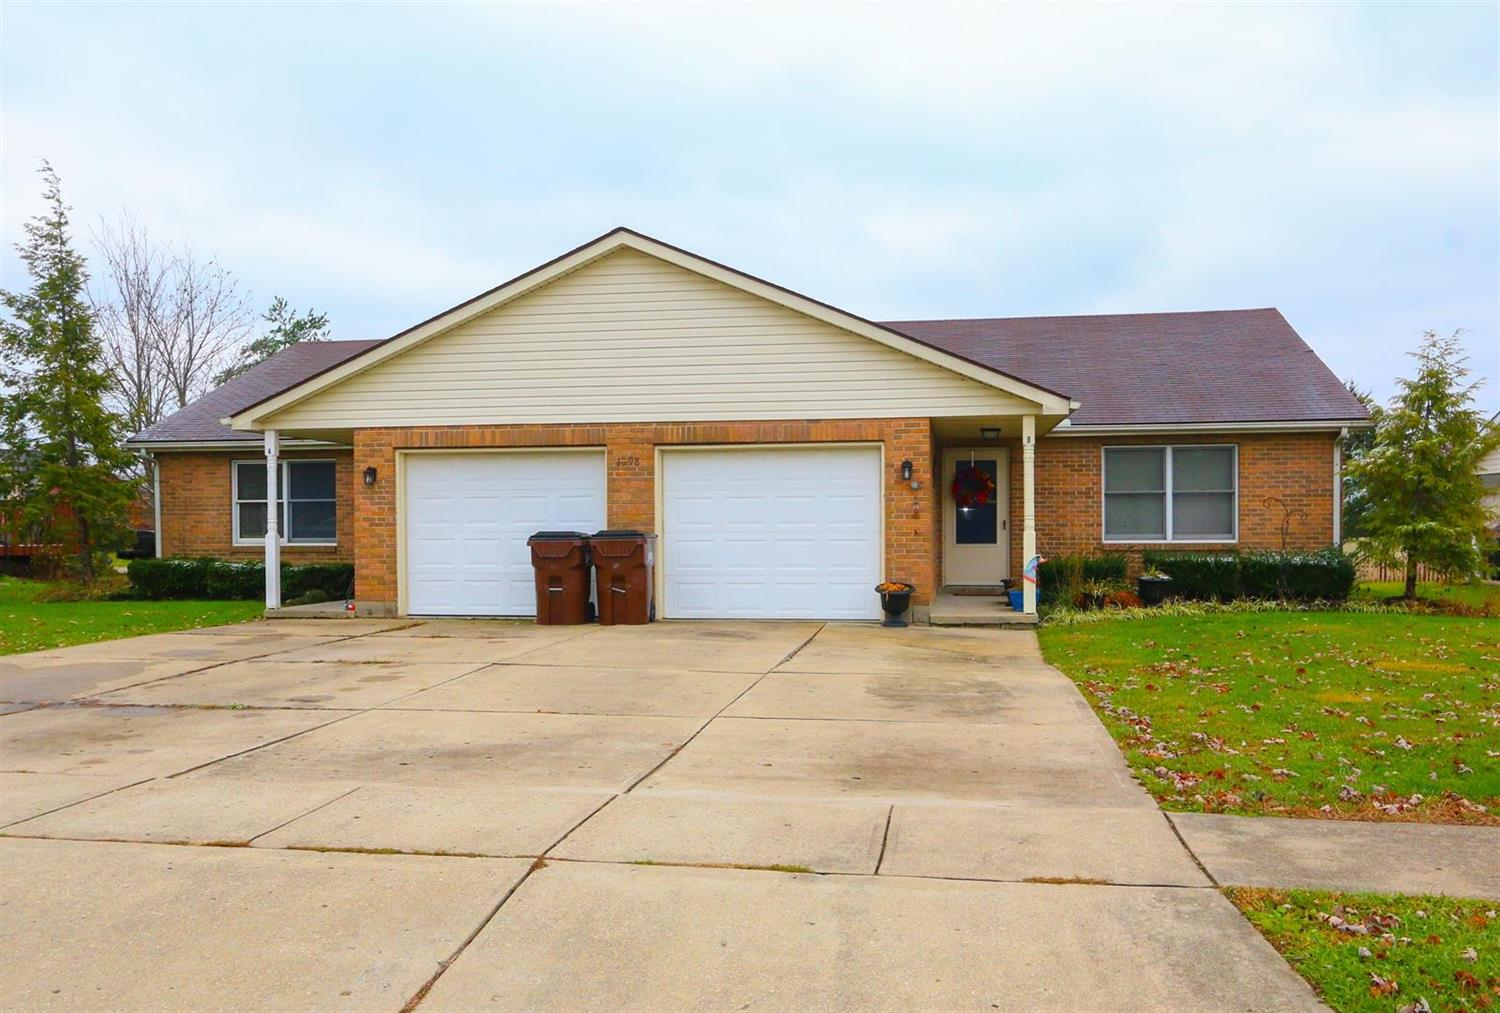 Property for sale at 1098 Hunters Run Drive, Lebanon,  OH 45036